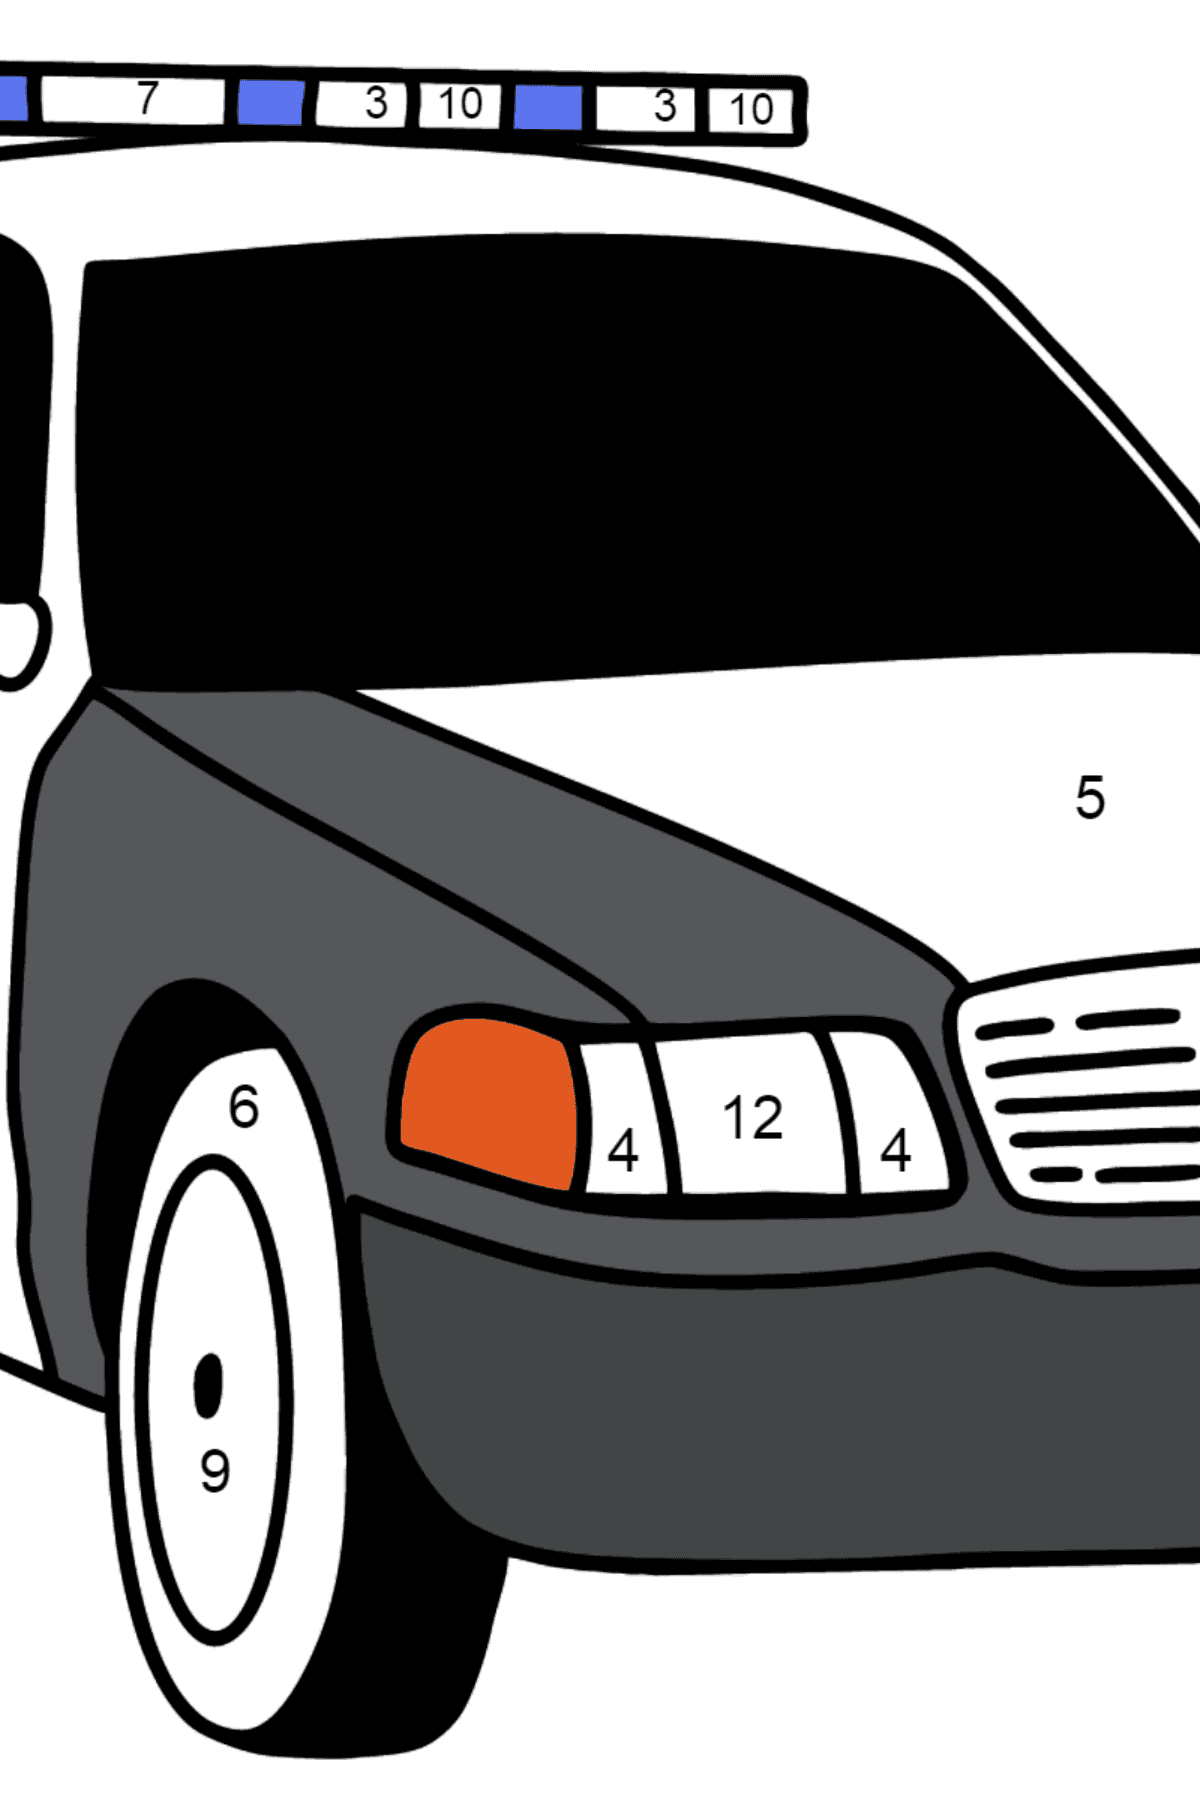 US Police Car coloring page - Coloring by Numbers for Kids